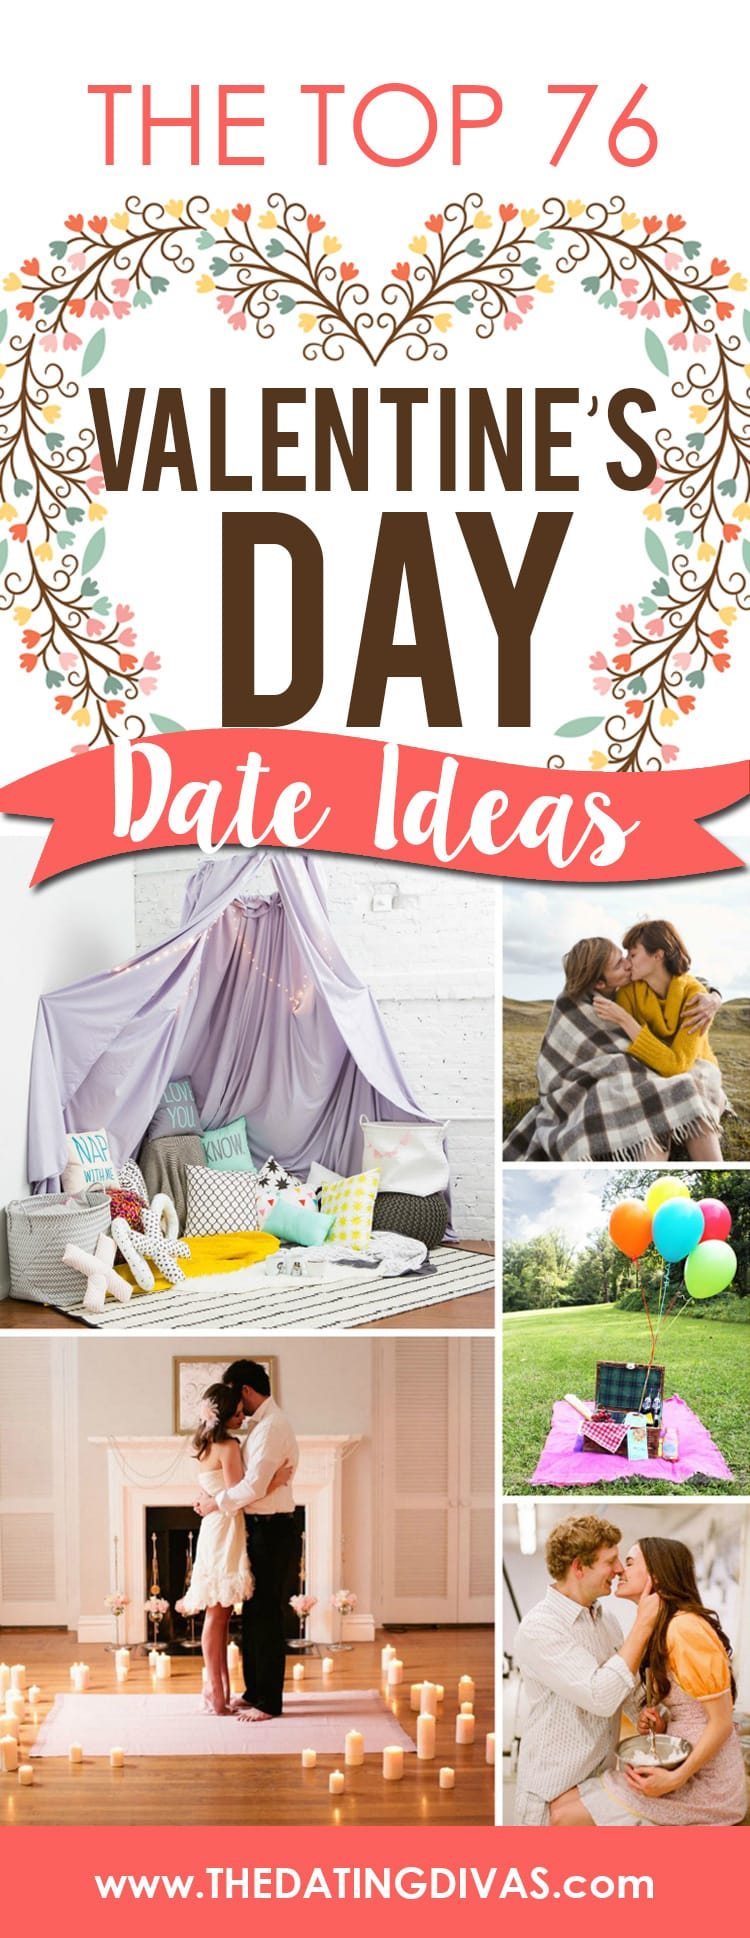 Top 76 Valentine's Day Date Ideas